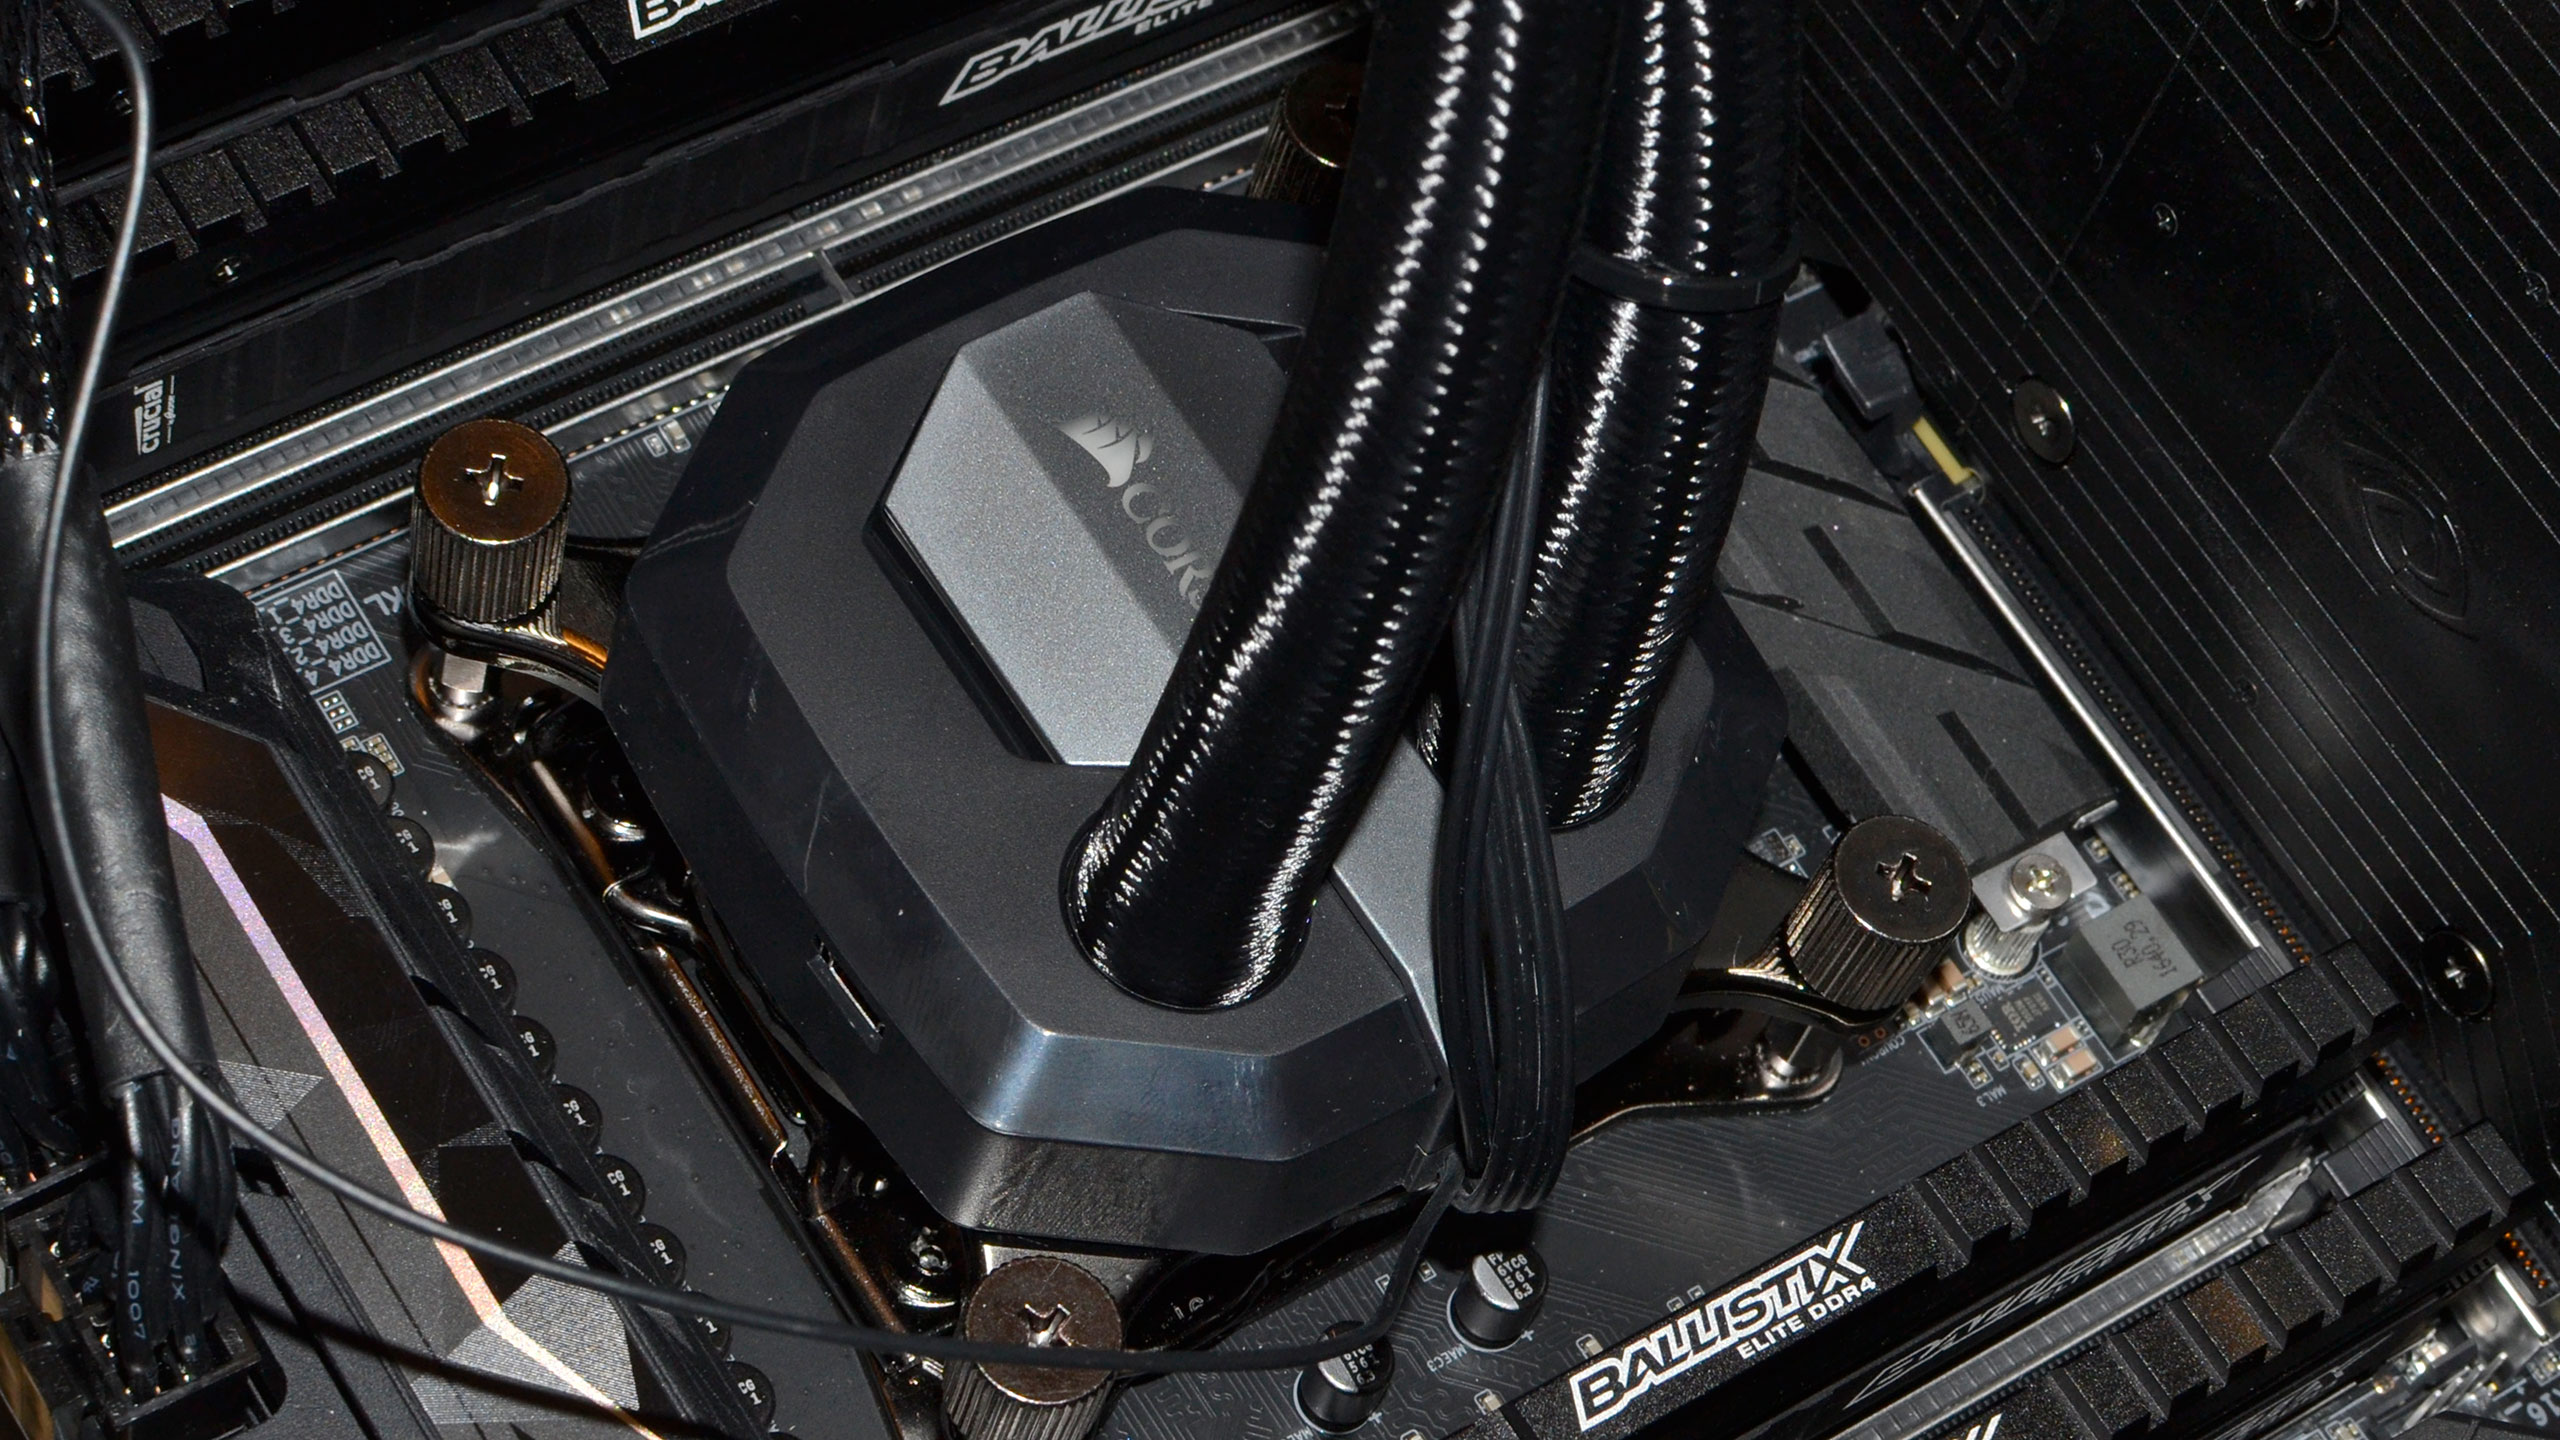 Extreme Gaming Pc Build Guide 2019 The Best Parts For Ultimate Besides Power Supply Schematic Diagram On Dell Computer Schematics Gamer